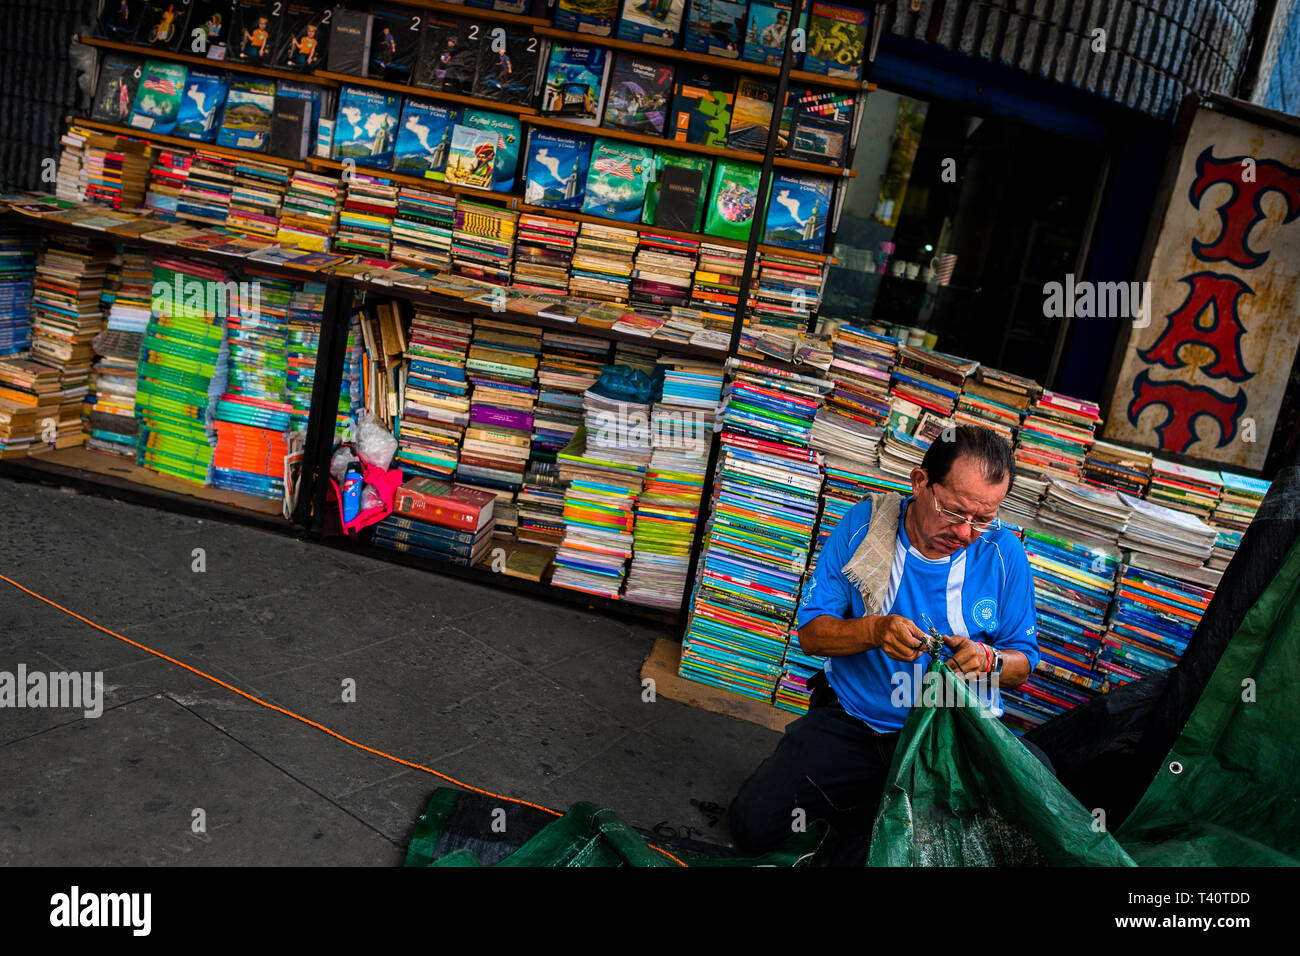 A Salvadoran bookseller works in front of piles of used books stacked on the street in a secondhand bookshop in San Salvador, El Salvador. - Stock Image